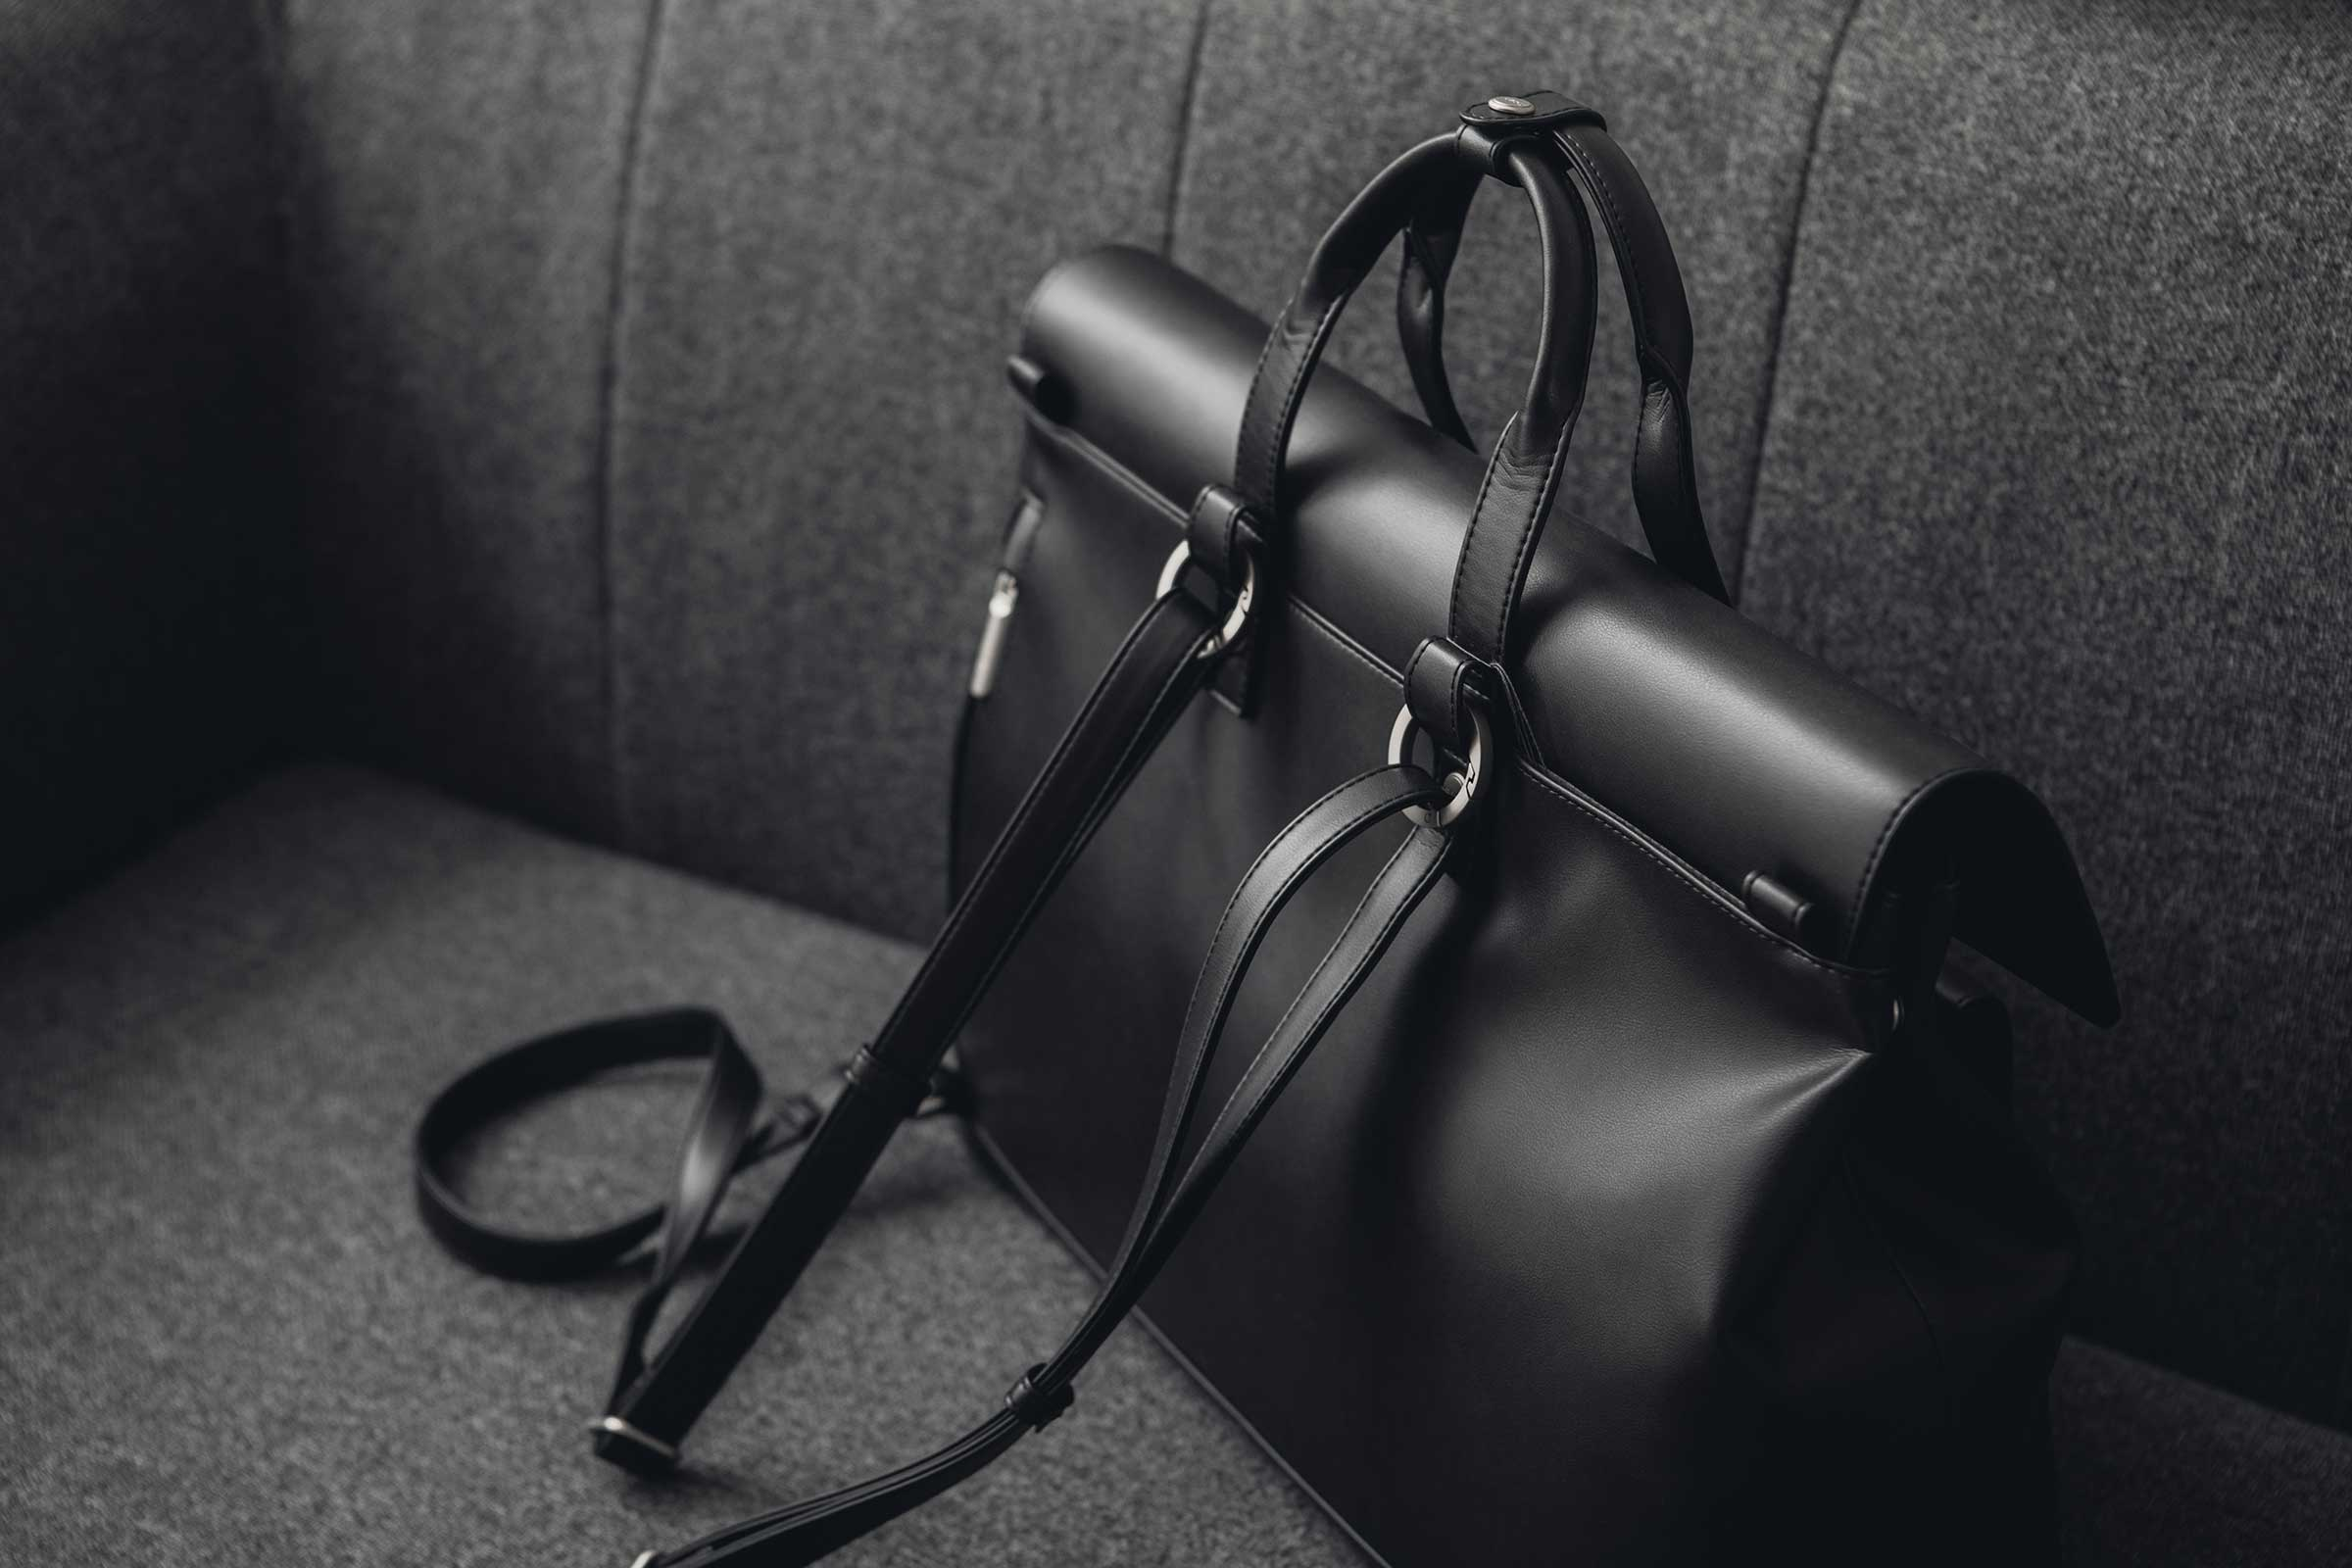 Moshi's Treya backpack made from vegan leather sitting on a stylish dark gray sofa.